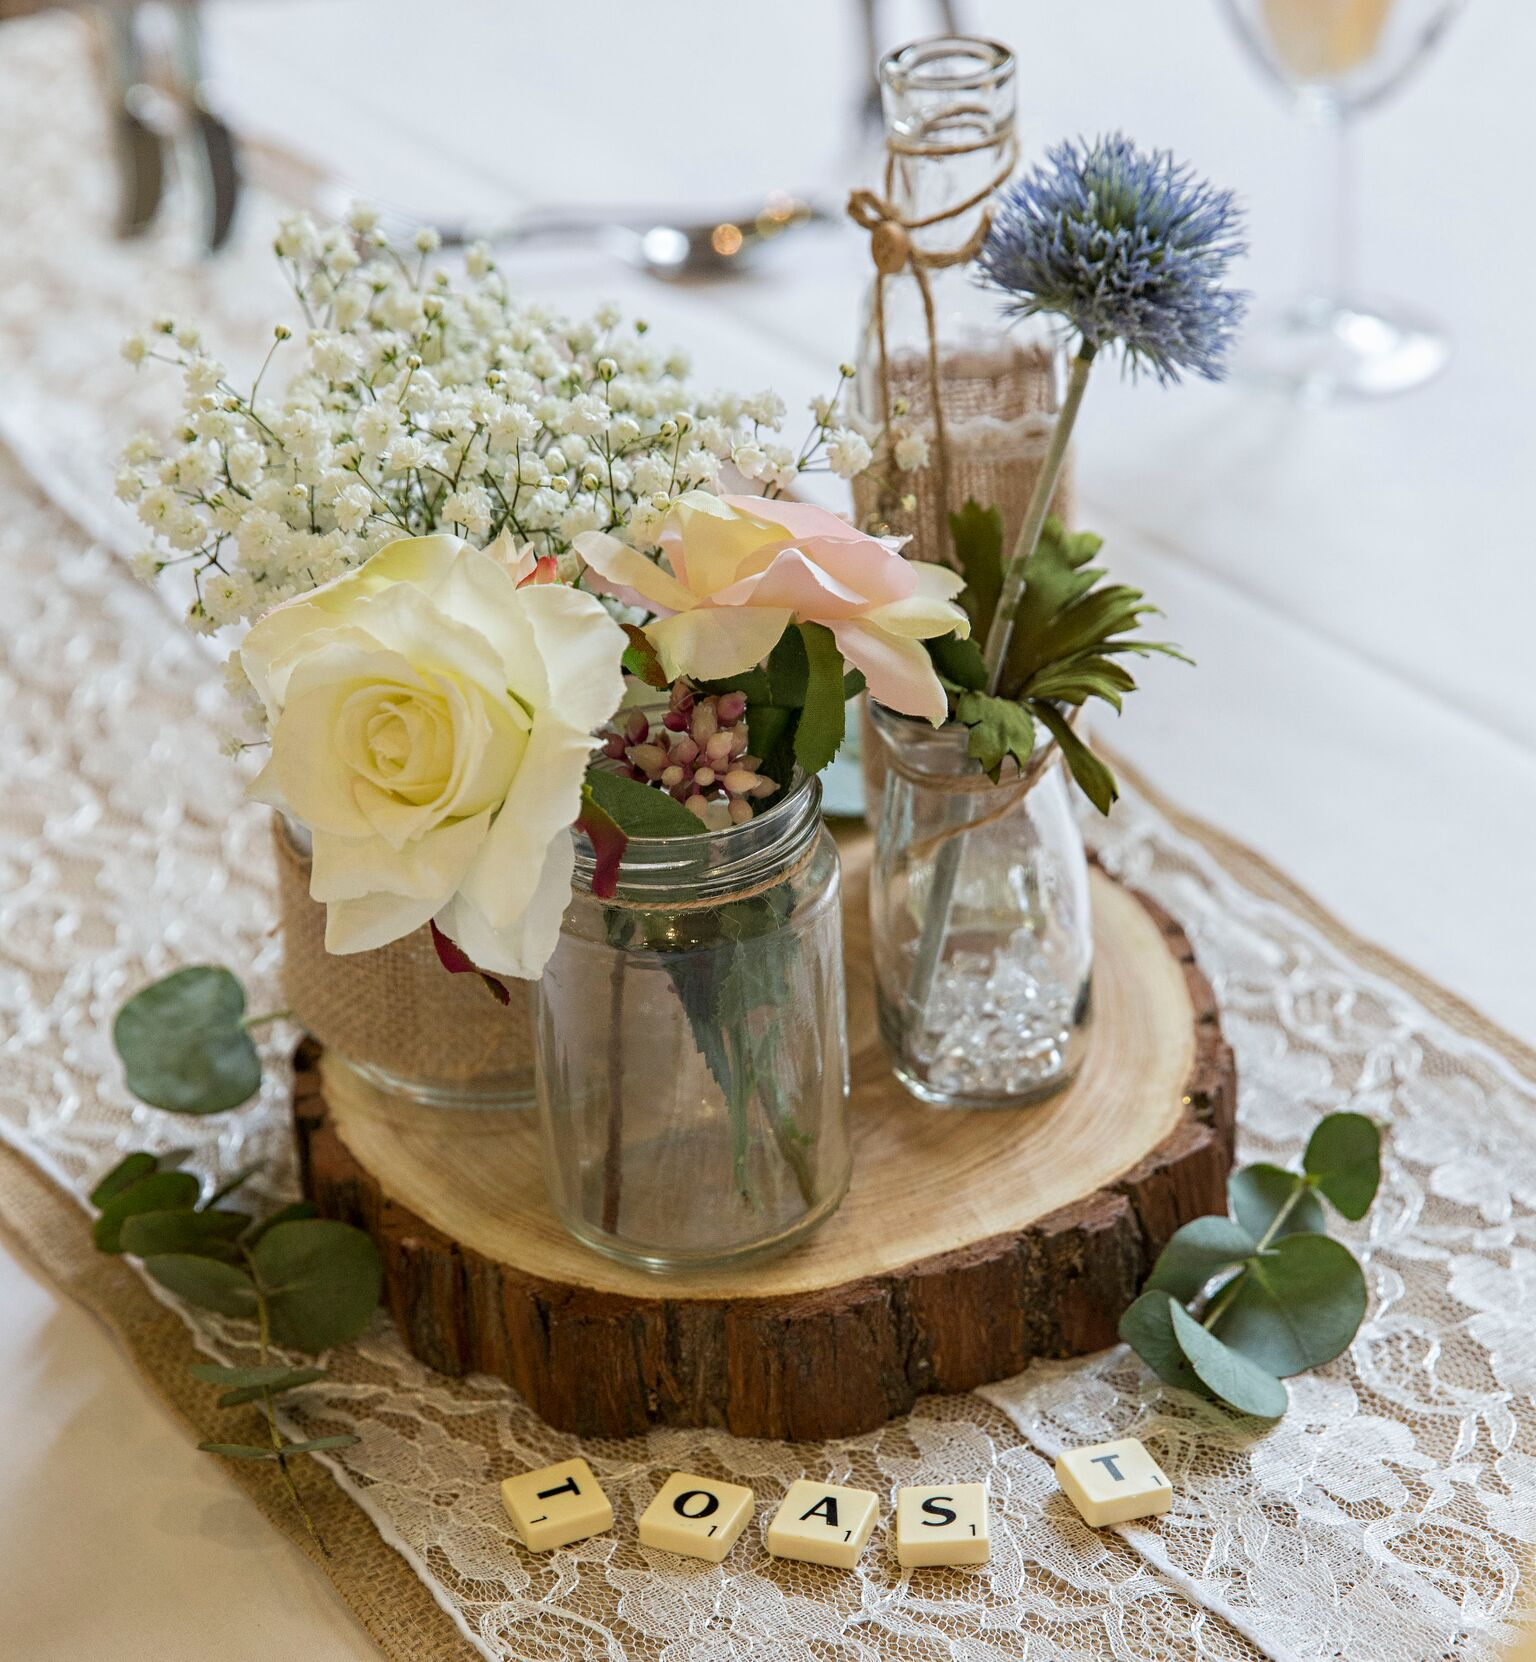 Rustic Log Centrepiece - Gill Batson Photography Sophia's Final Touch - Venue Styling - Weddings